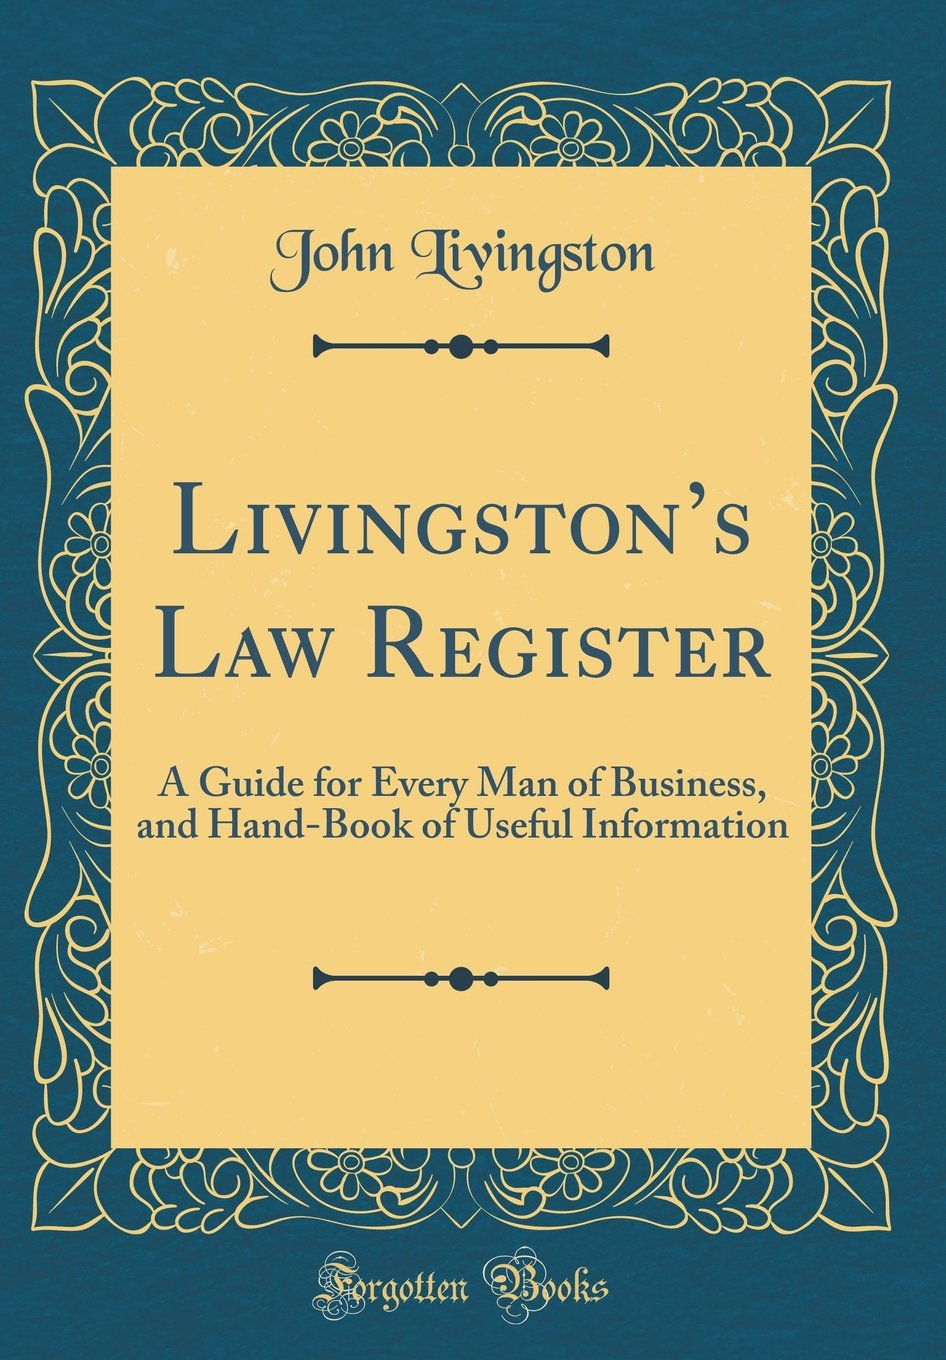 Livingston's Law Register: A Guide for Every Man of Business, and Hand-Book of Useful Information (Classic Reprint) pdf